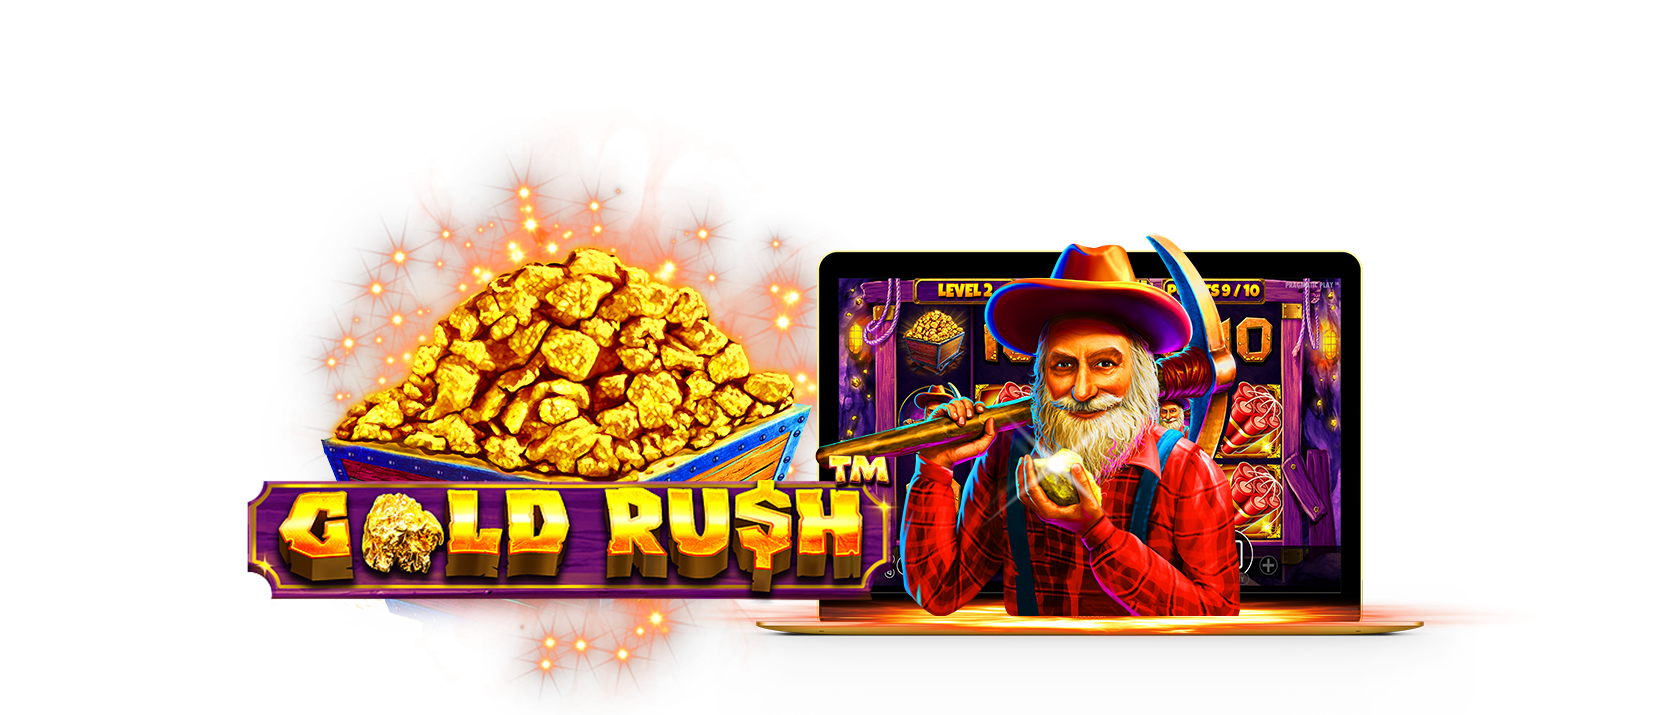 gold rush! slots game logo